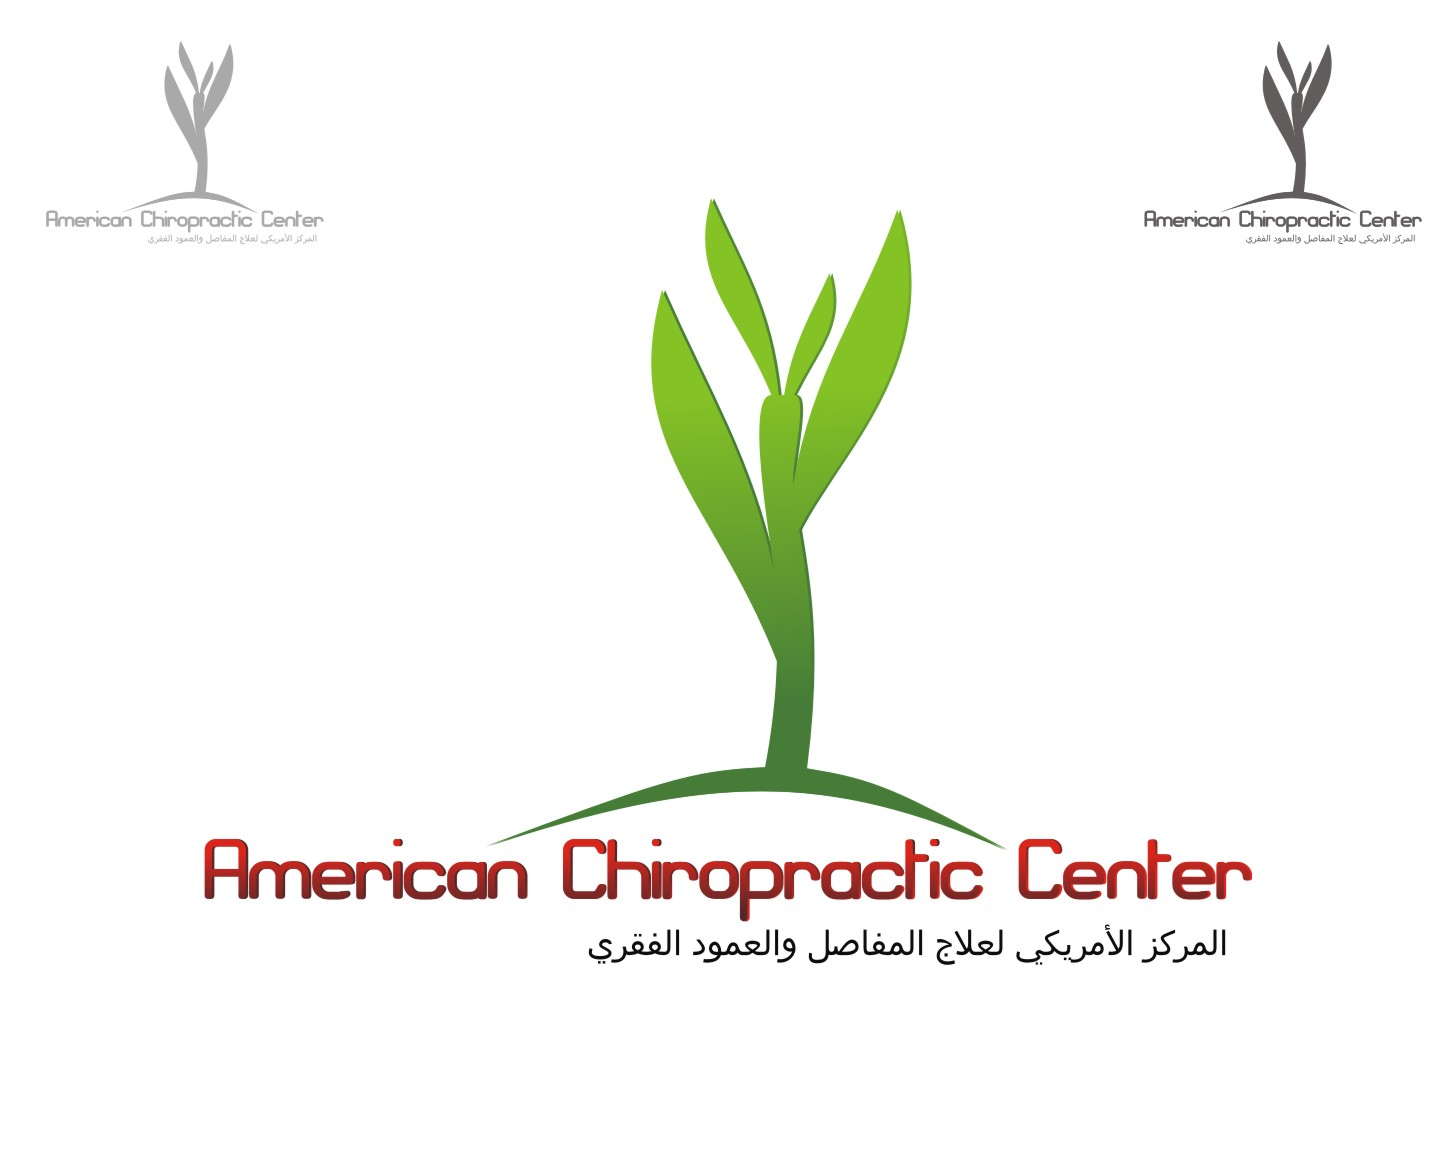 Logo Design by Andri Septiyanto - Entry No. 38 in the Logo Design Contest Logo Design for American Chiropractic Center.